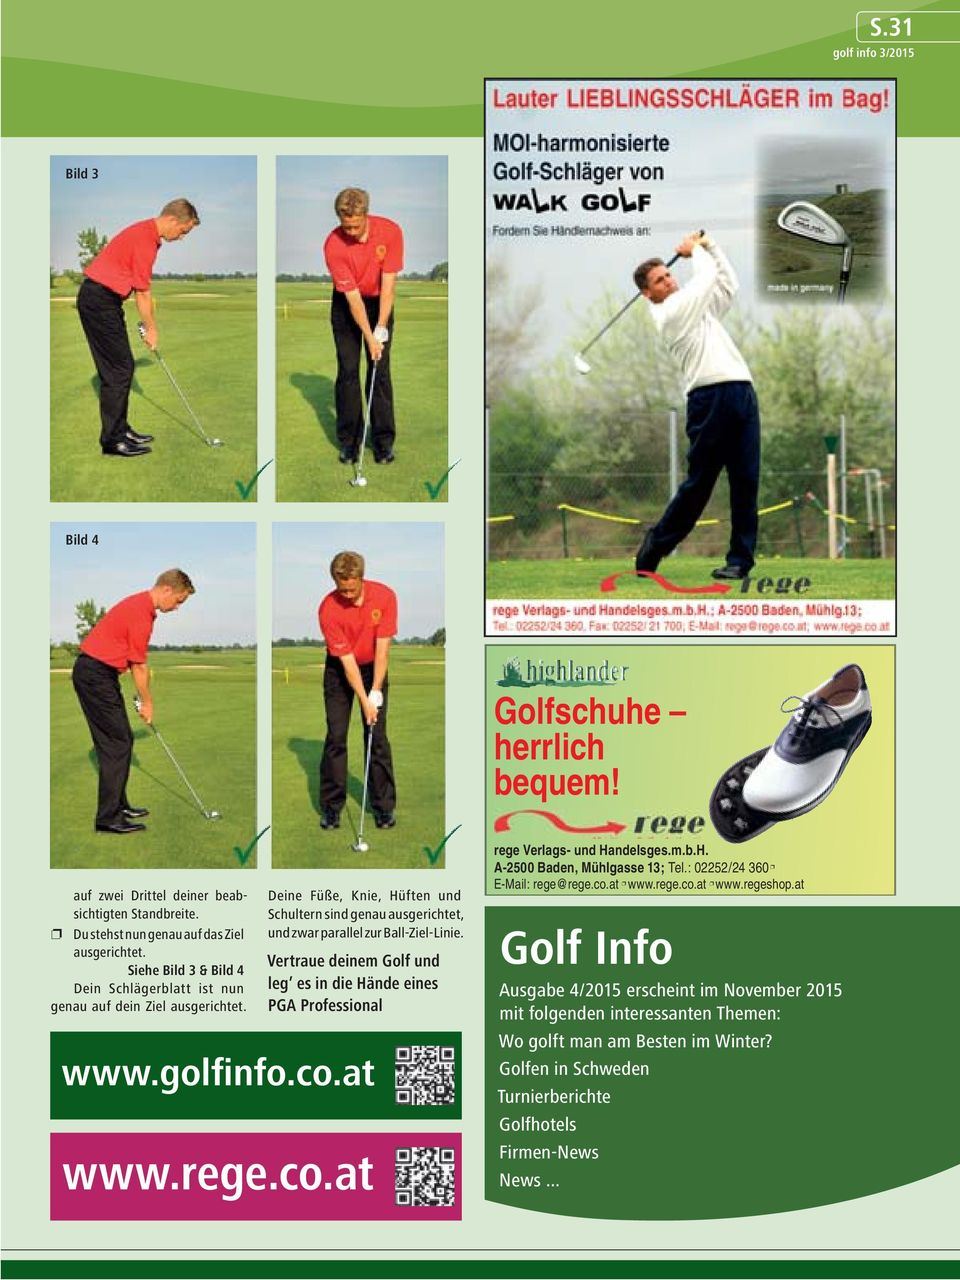 zwar parallel zur Ball-Ziel-Linie. Vertraue deinem Golf und leg es in die Hände eines PGA Professional www.golfinfo.co.at www.rege.co.at rege Verlags- und Handelsges.m.b.H. A- Tel.